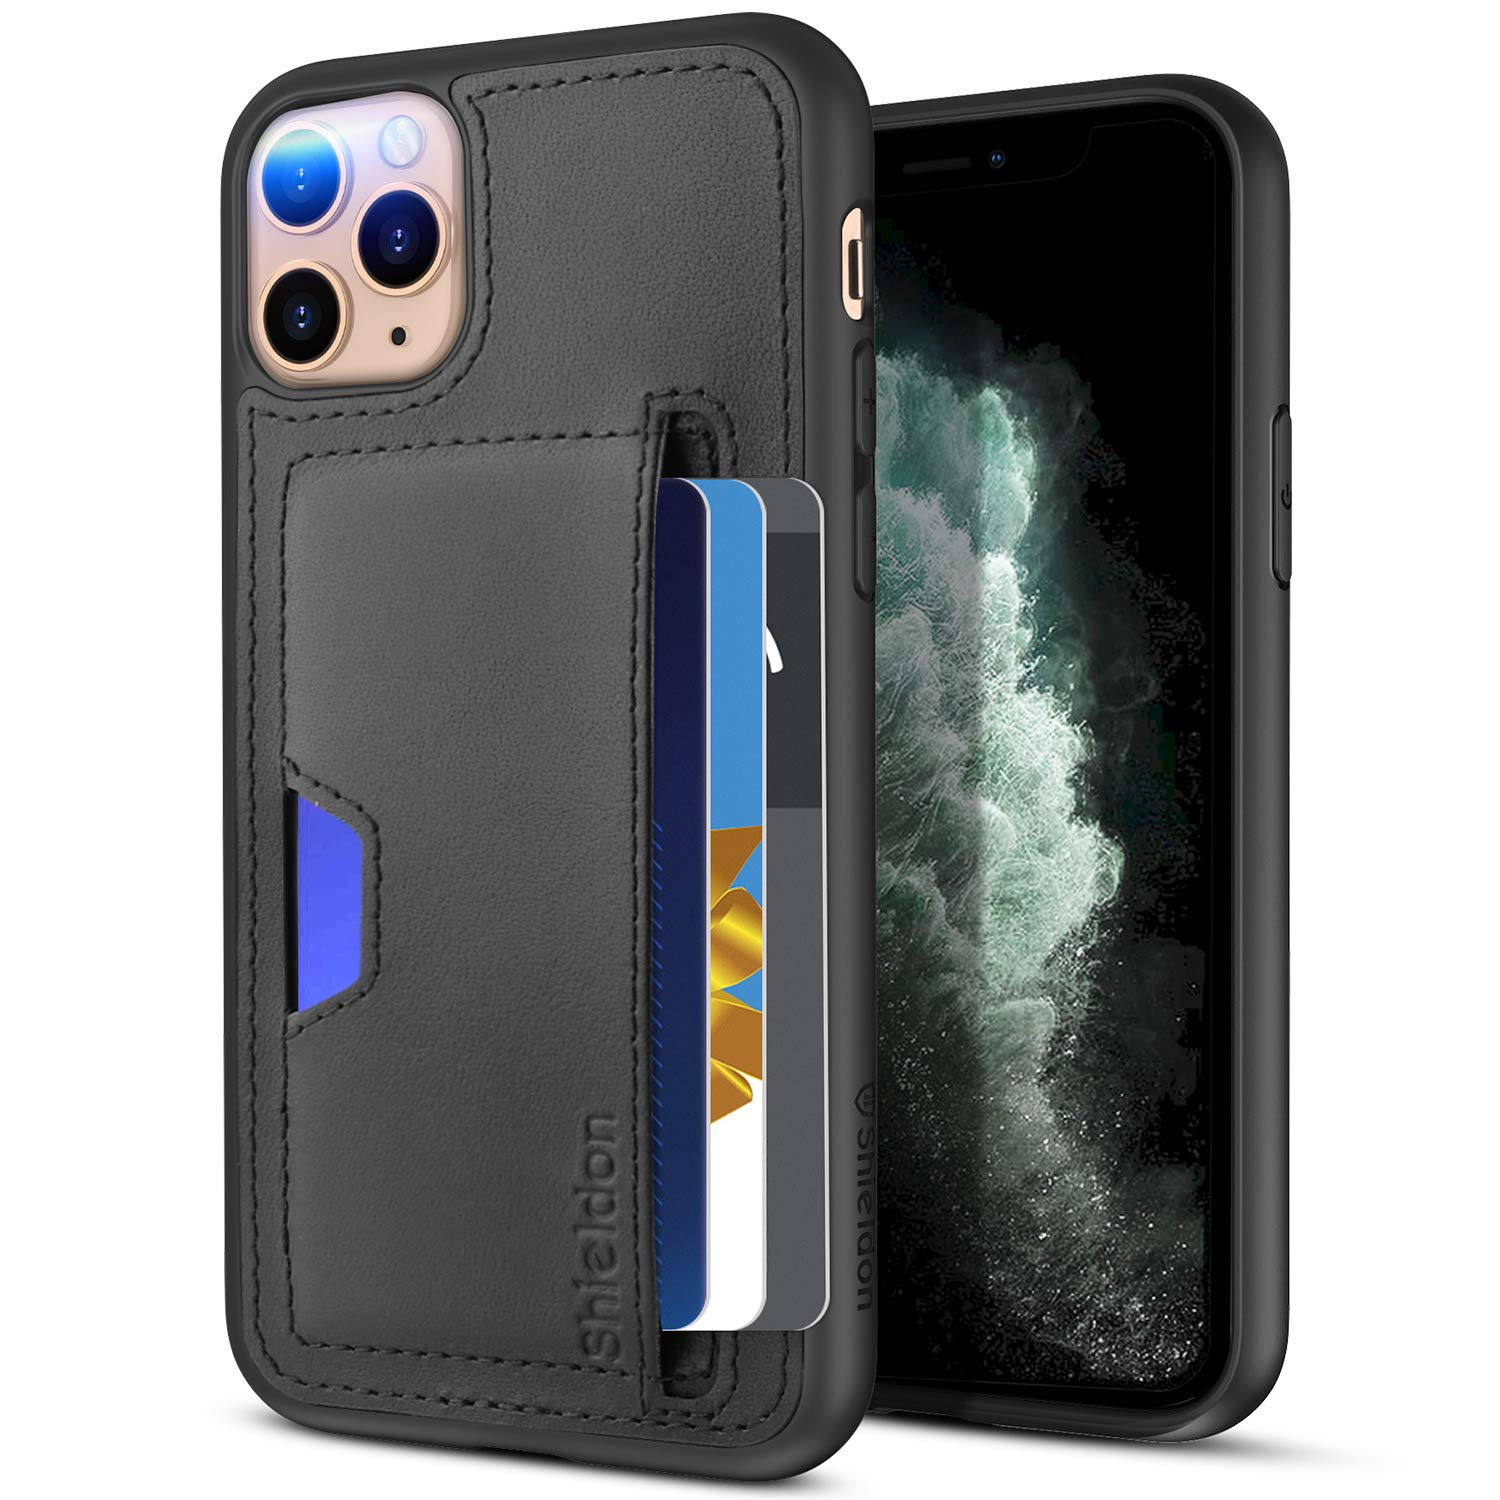 SHIELDON iPhone 11 Pro Case Genuine Leather iPhone Wallet Case RFID Protective Card Holder Folio Magnetic Stand Cover Compatible with iPhone 11 Pro - Black 5.8 Inch - 2019